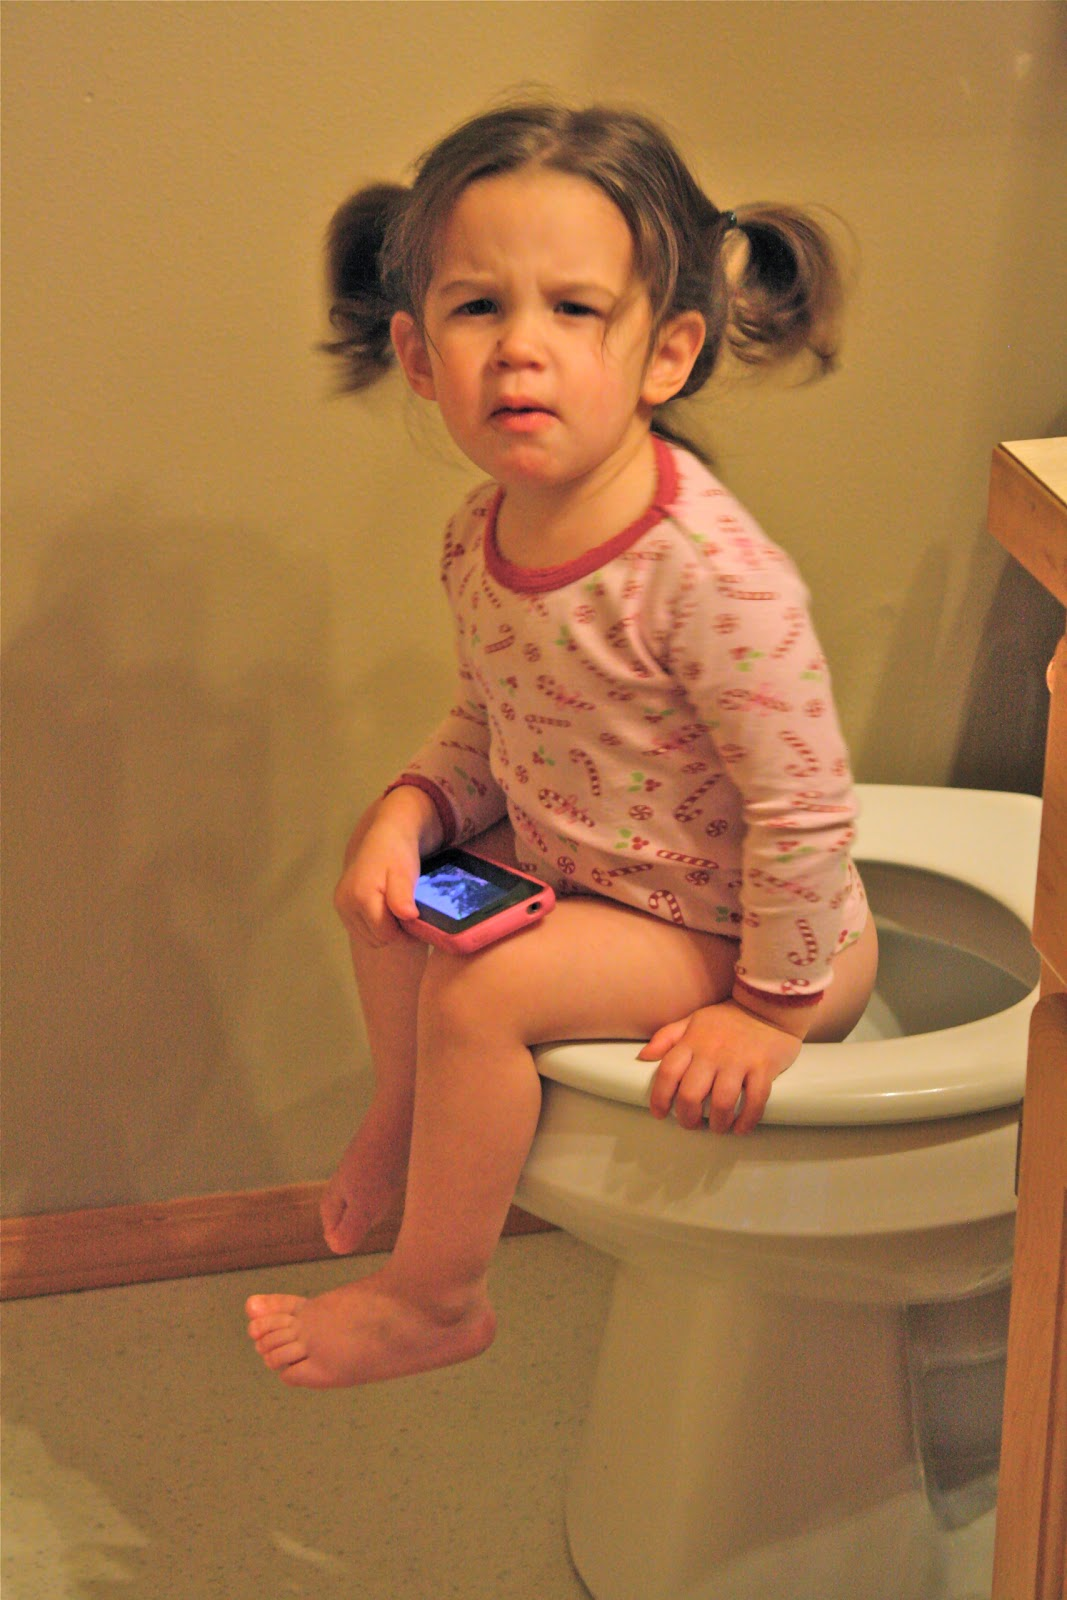 Little Girl Potty Training Boys | newhairstylesformen2014.com